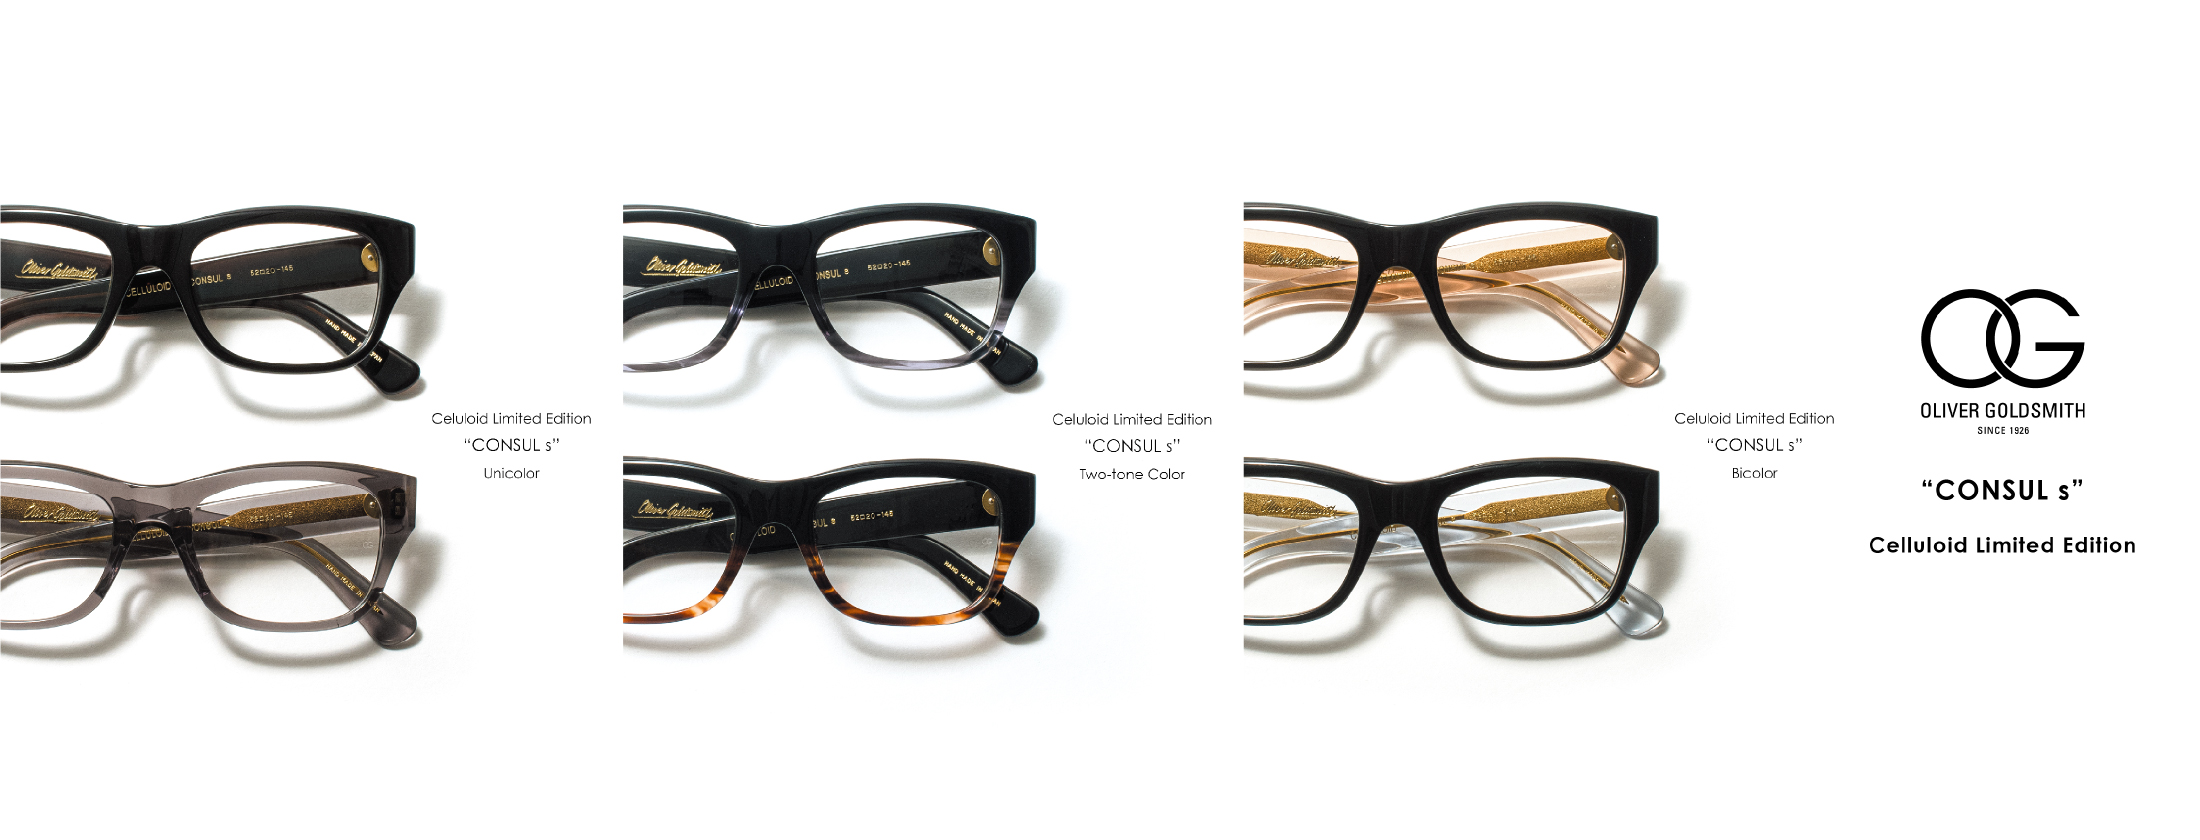 OG OLIVER GOLDSMITH CONSULs Celluloid Limited Edition